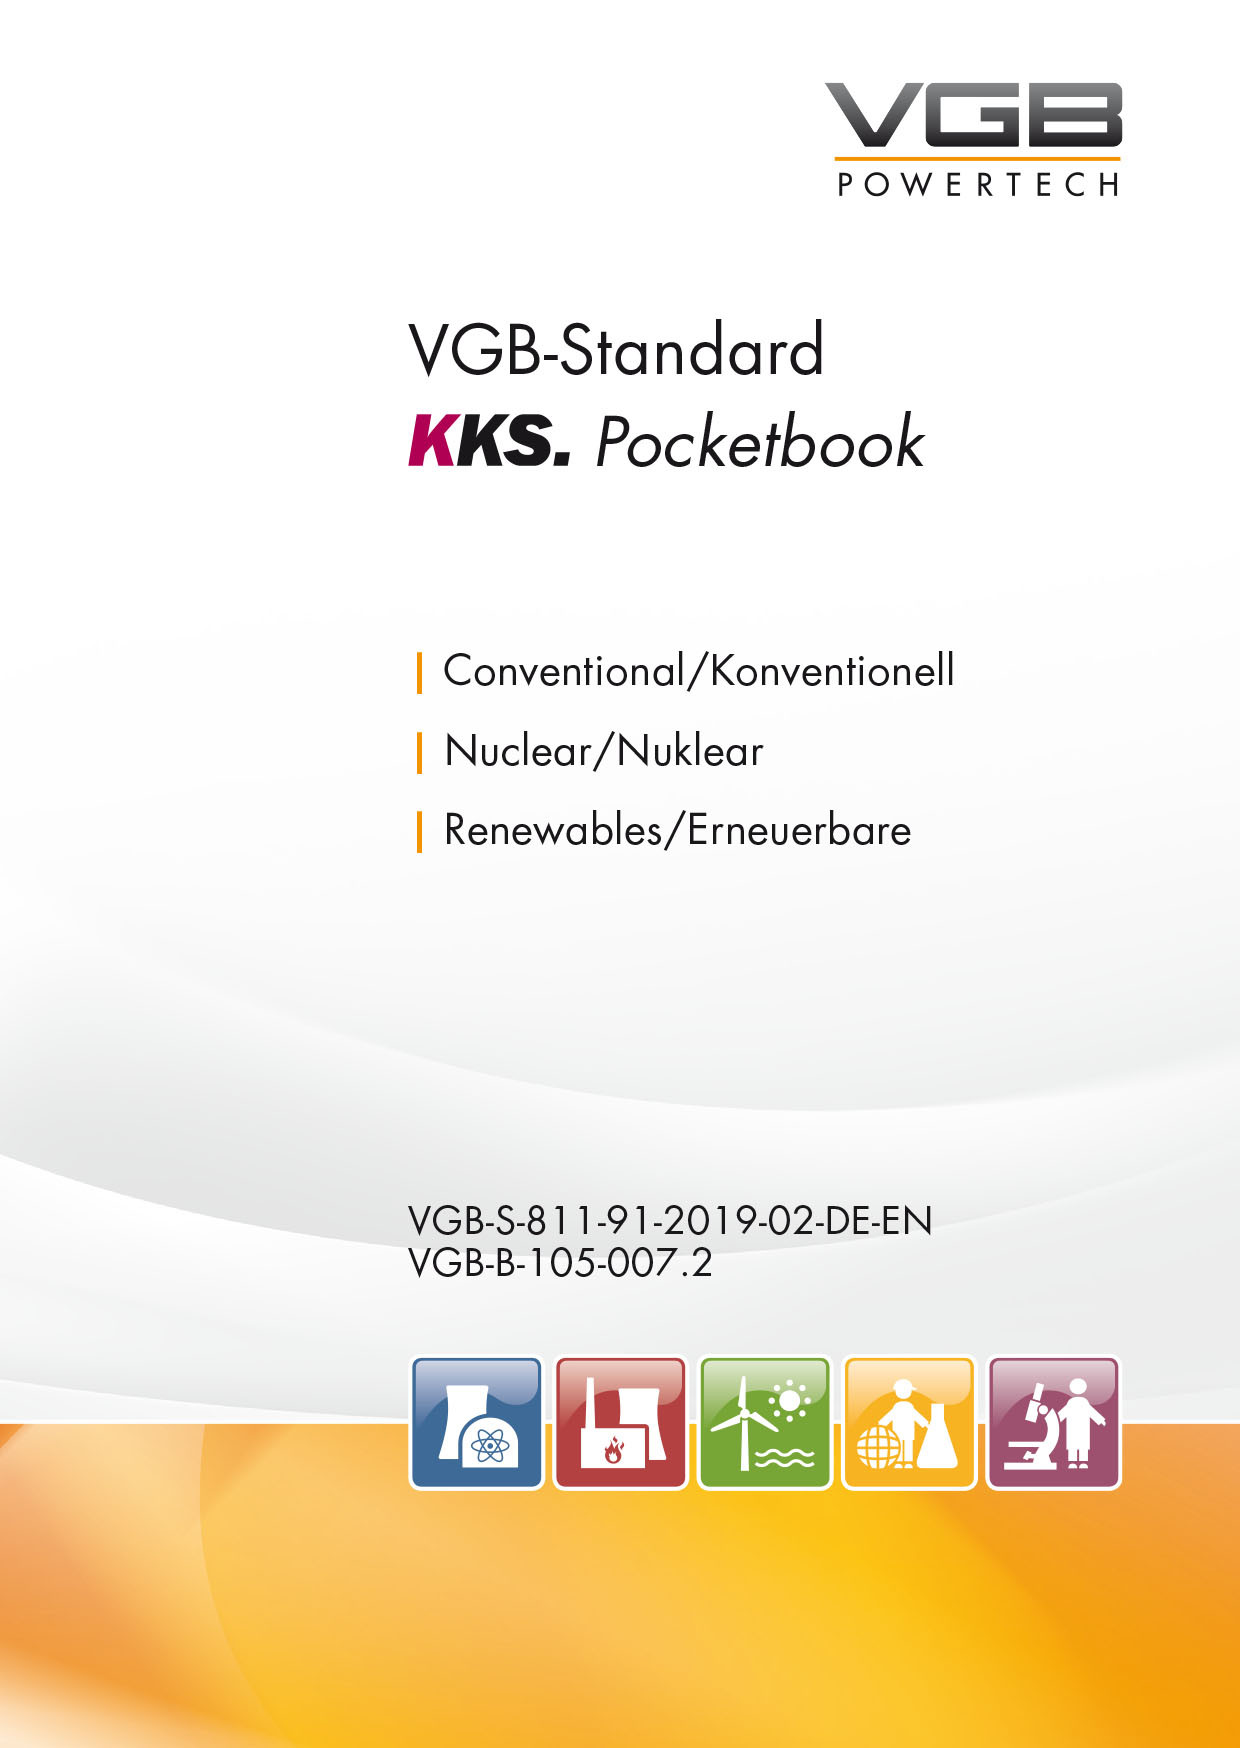 KKS Pocketbook